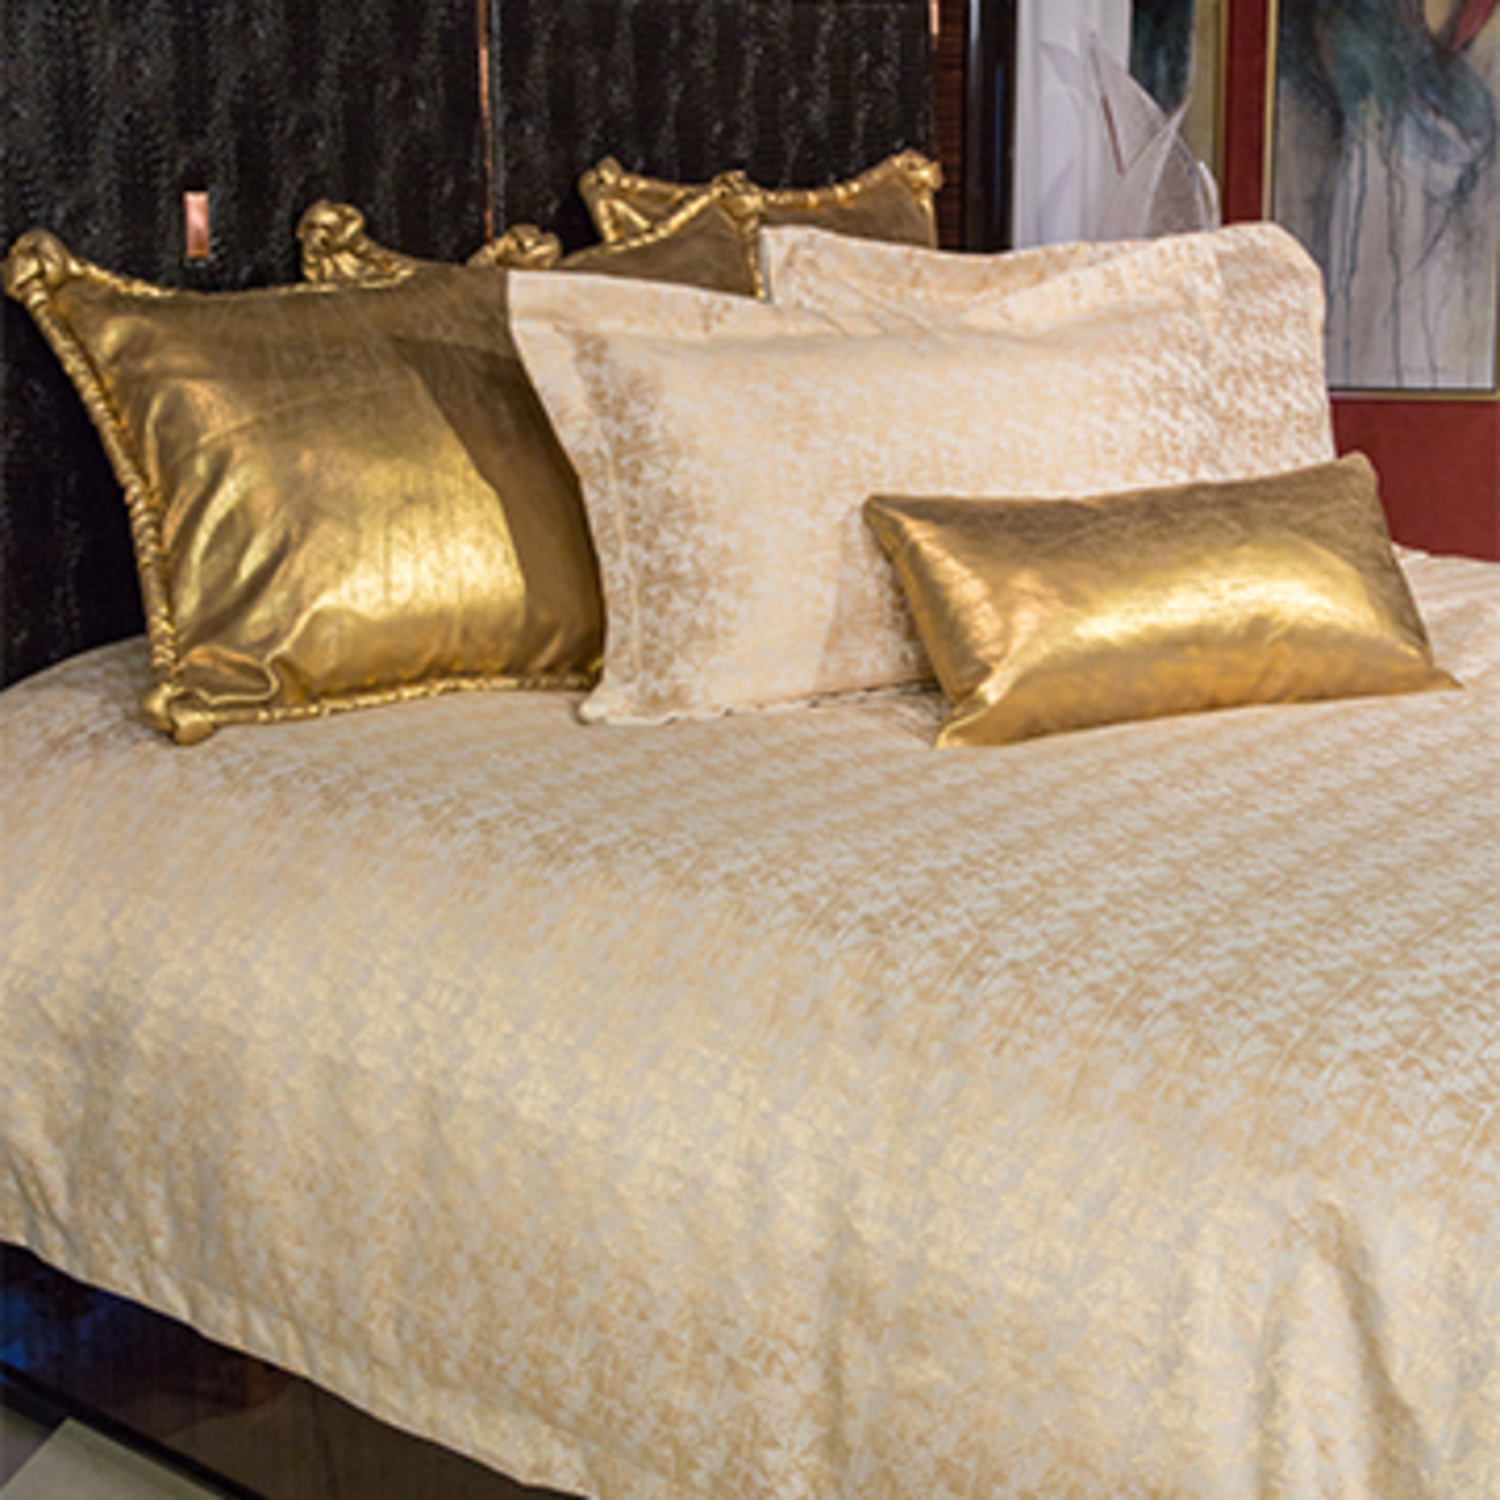 free comforter today product bedding set bath overstock piece bed shipping michael amini imperial